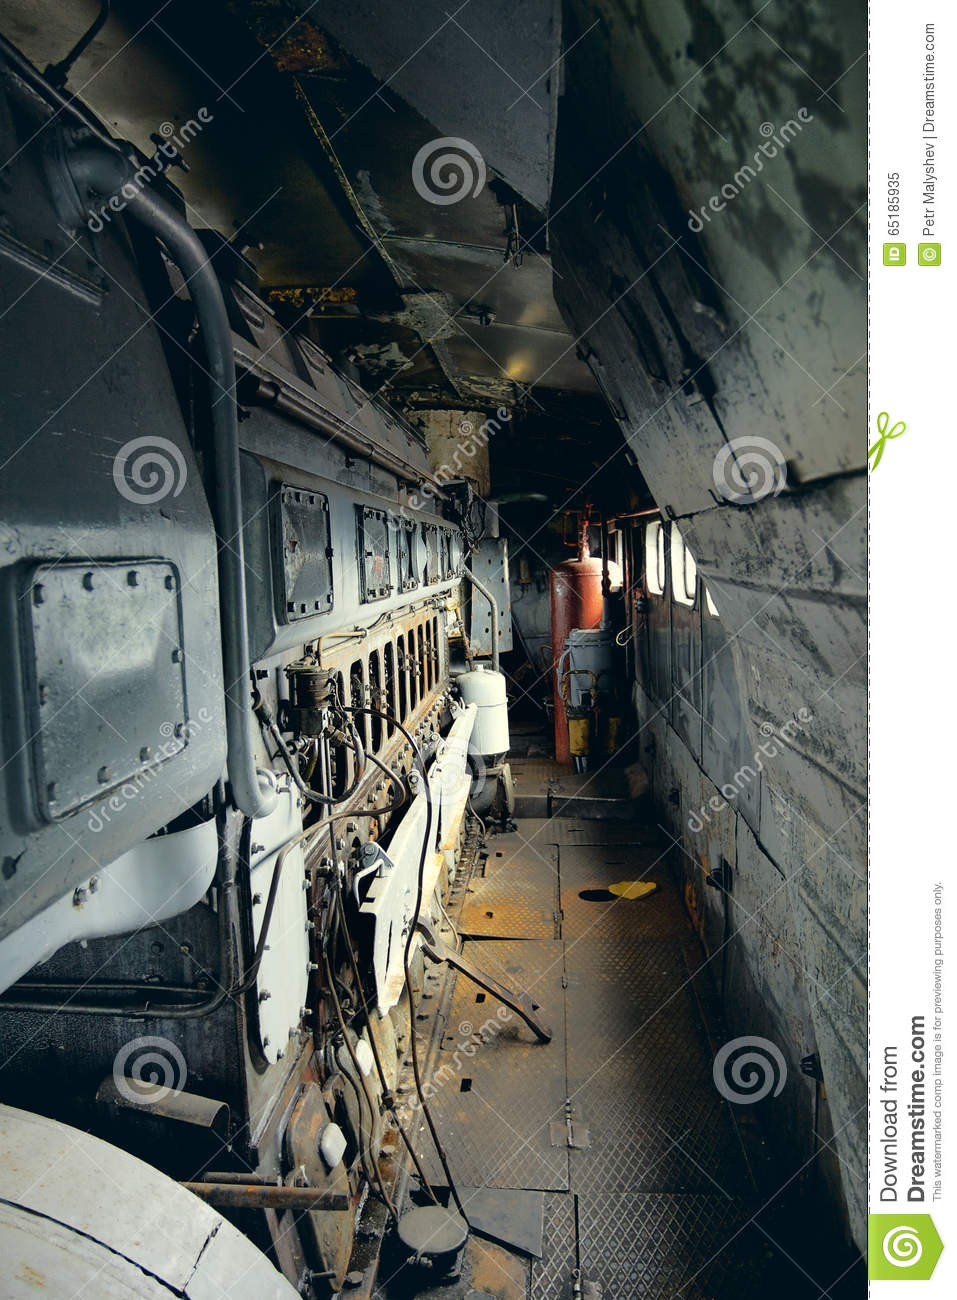 Wmata Crossties likewise Dolores S moreover Dolores L also  moreover Engineer Railroad. on railroad diesel mechanic pictures